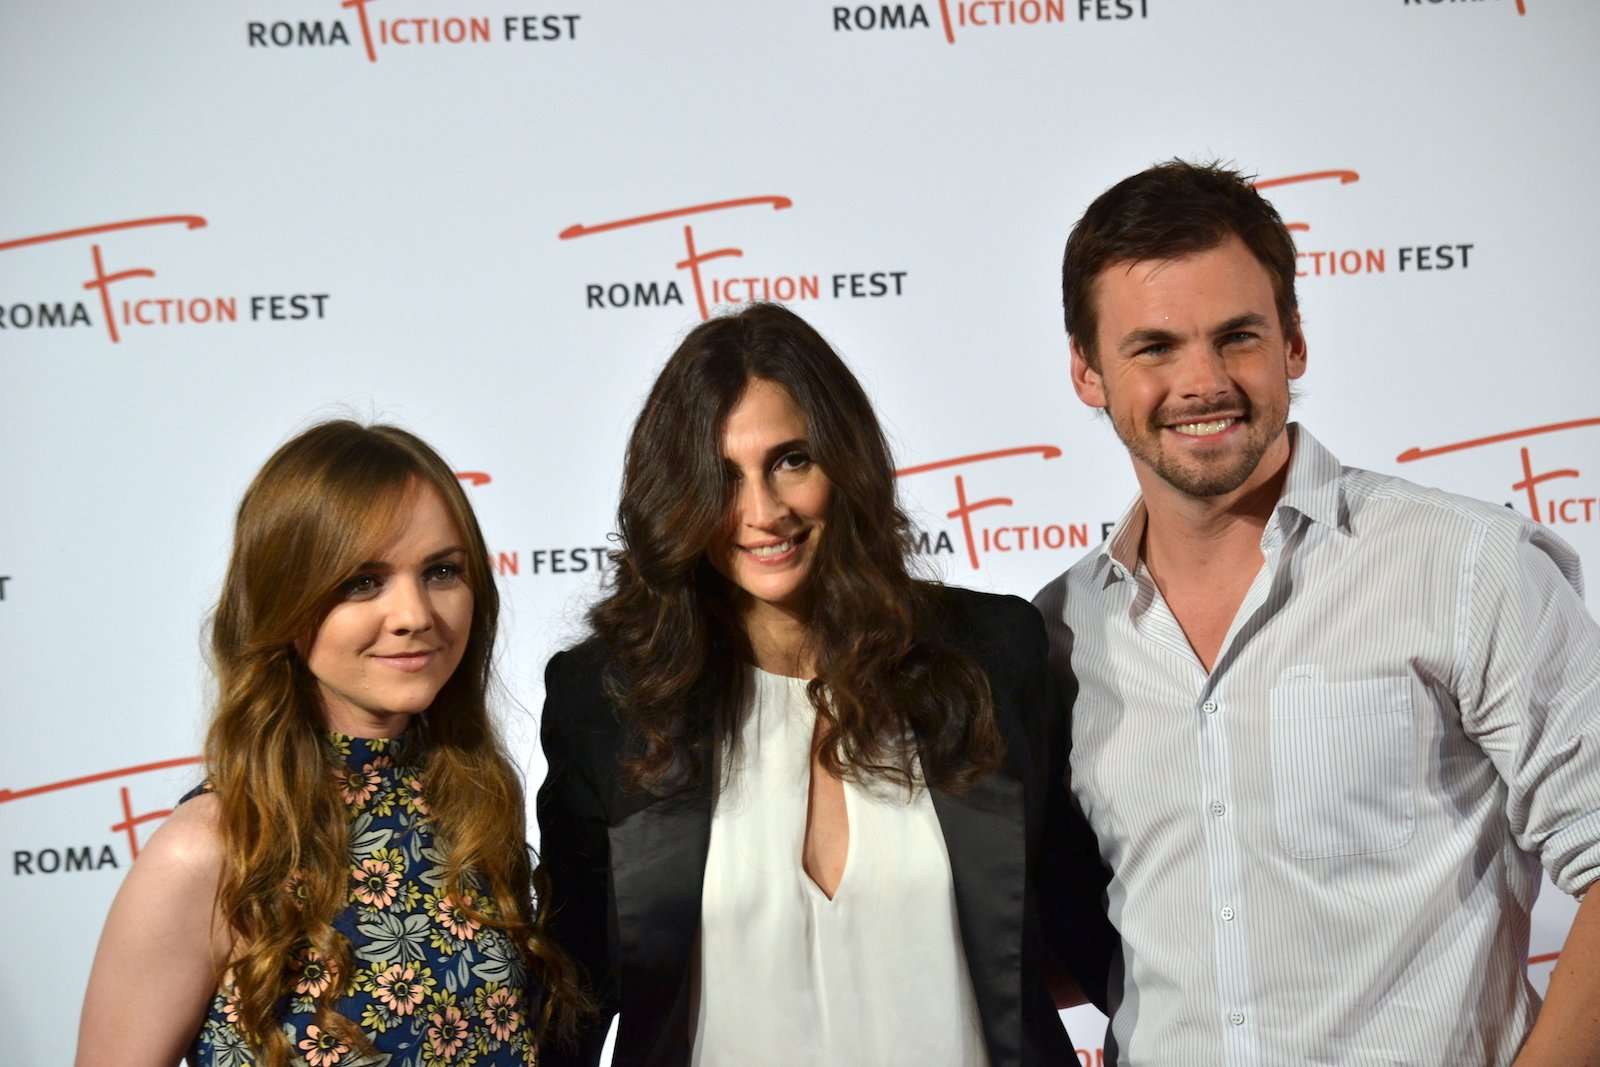 Roma Fiction Fest 2015: Michaela Watkins, Tommy Dewey e Tara Lynne Barr in uno scatto al photocall di Casual